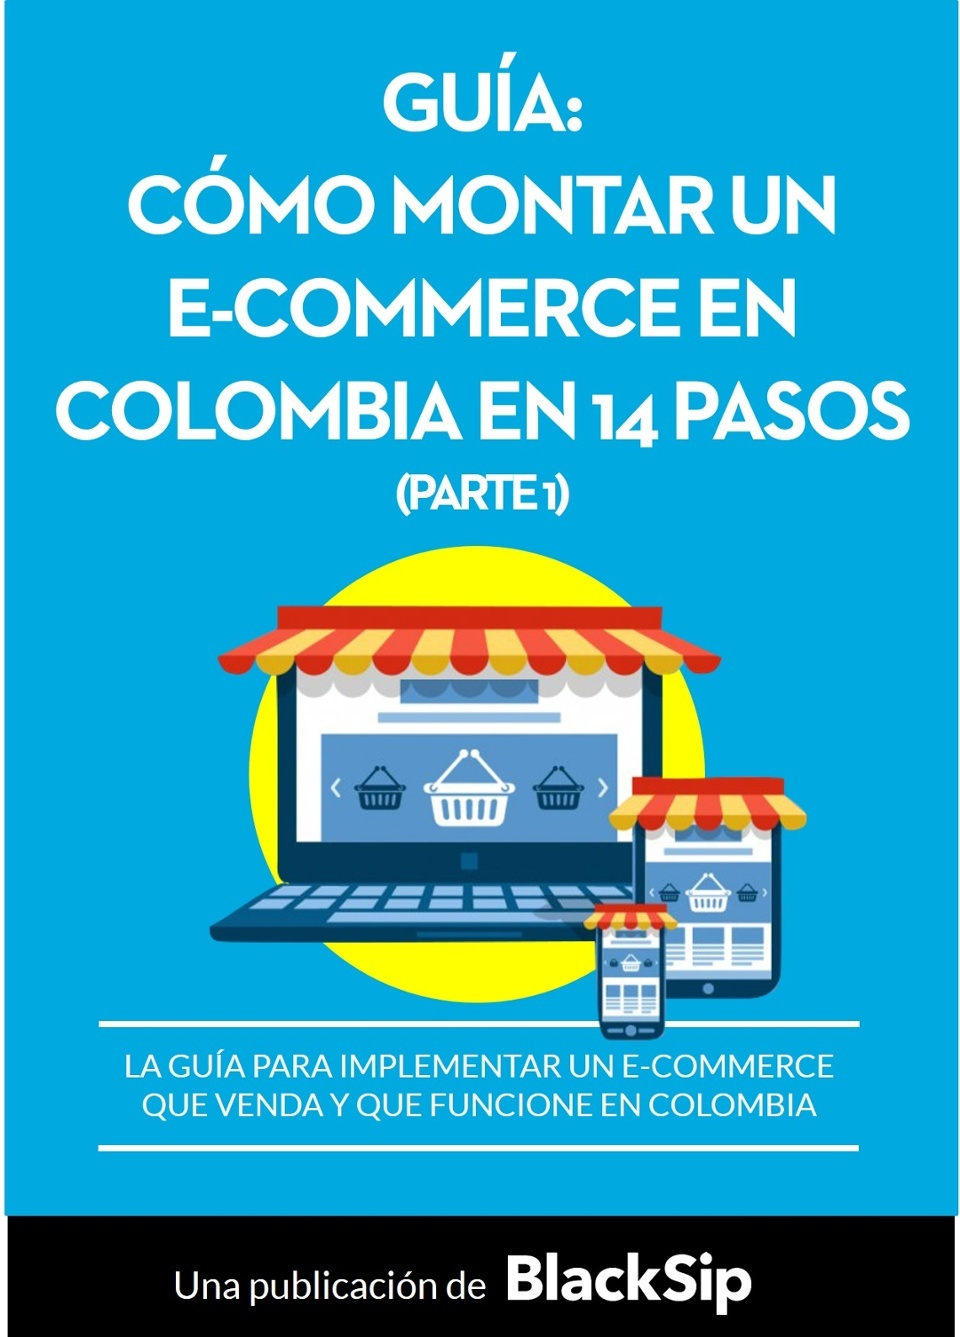 guia-ecommerce-colombia-uno.jpg